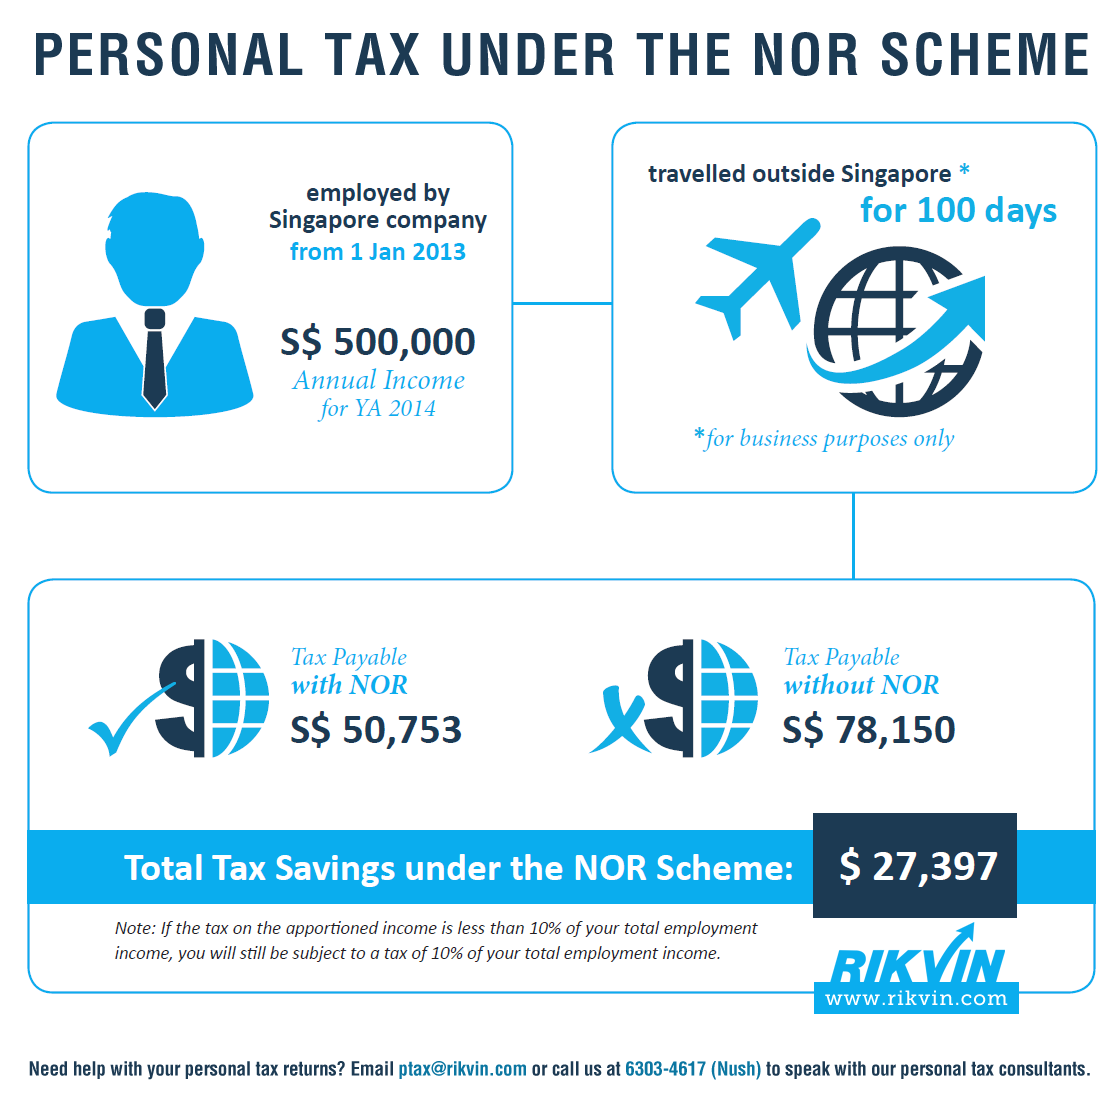 nor-scheme-infographic Infographic: Not Ordinarily Resident (NOR) Scheme  nor-scheme-infographic Infographic: Not Ordinarily Resident (NOR) Scheme